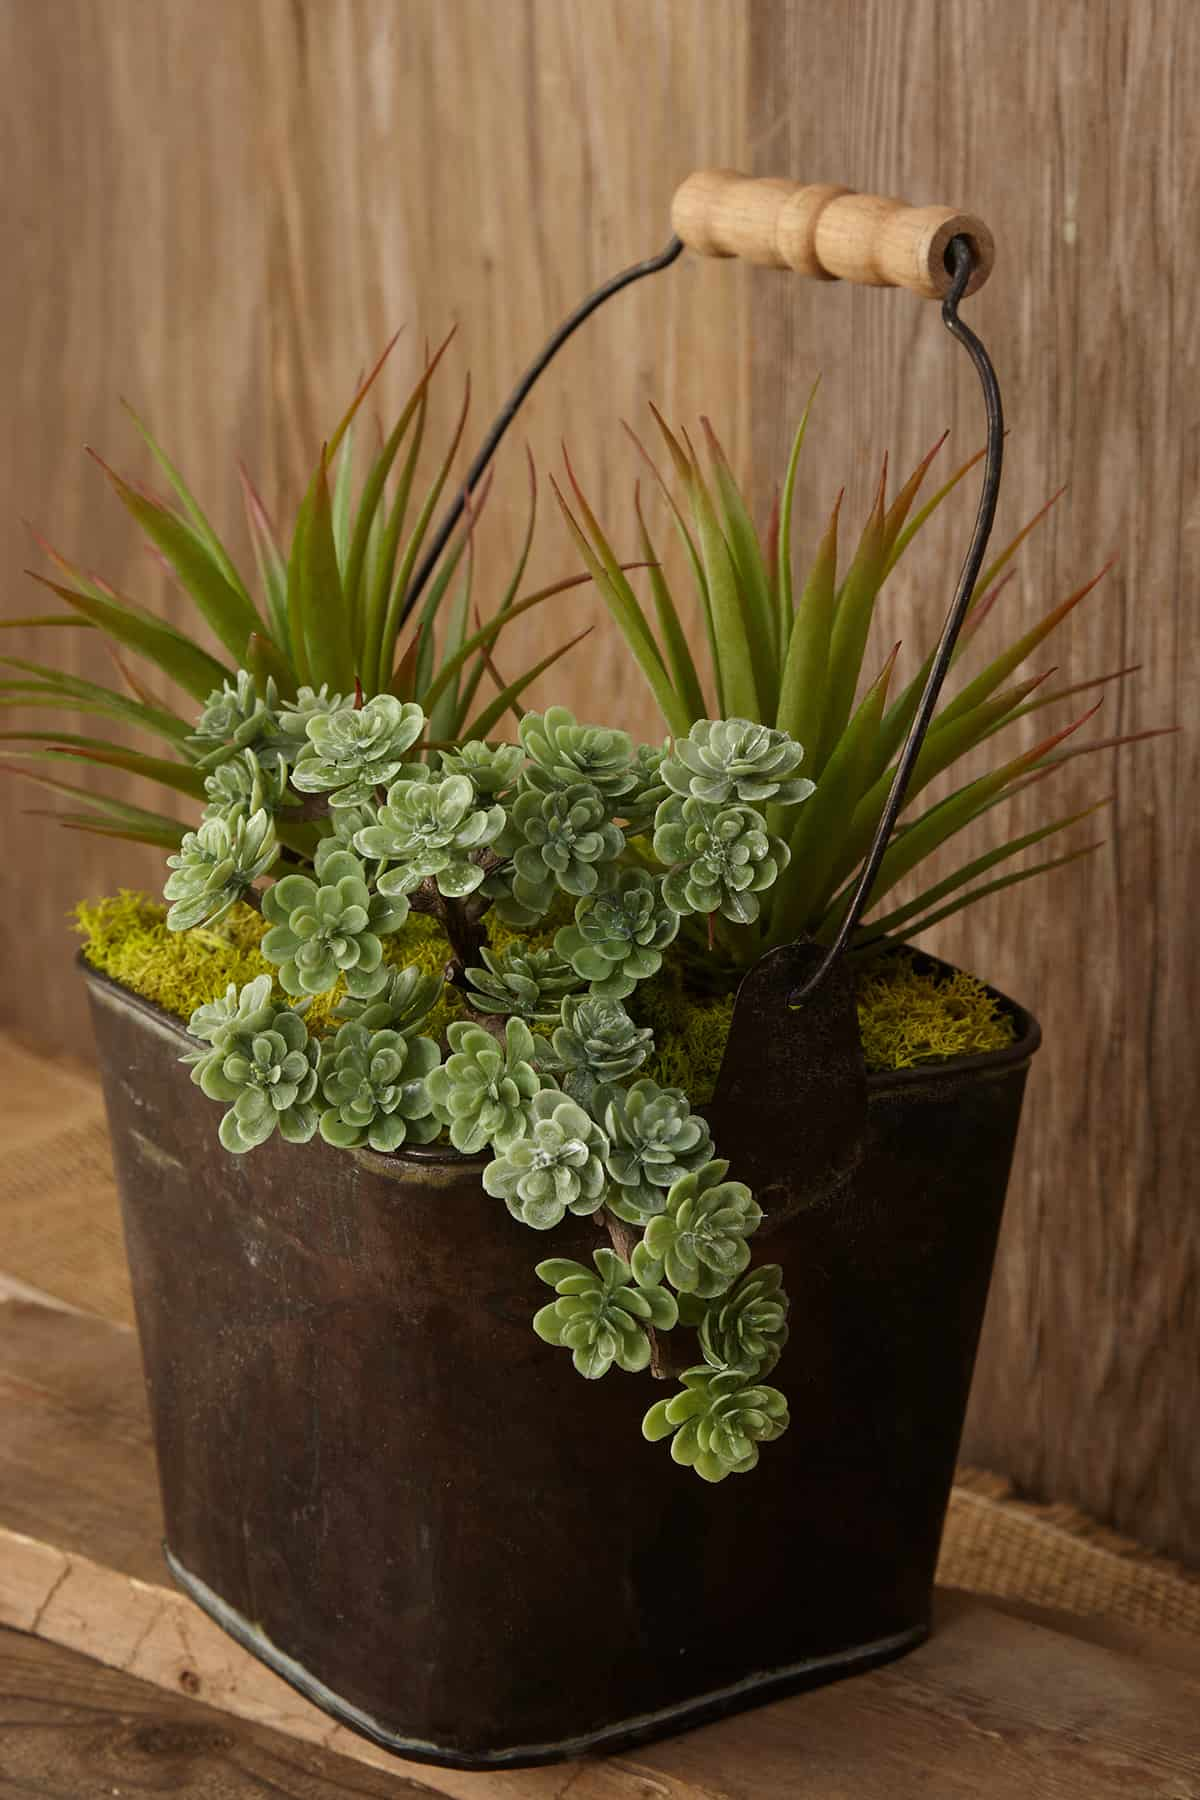 RECYCLE A METALLIC BUCKET INTO A SUCCULENT ARRANGEMENT